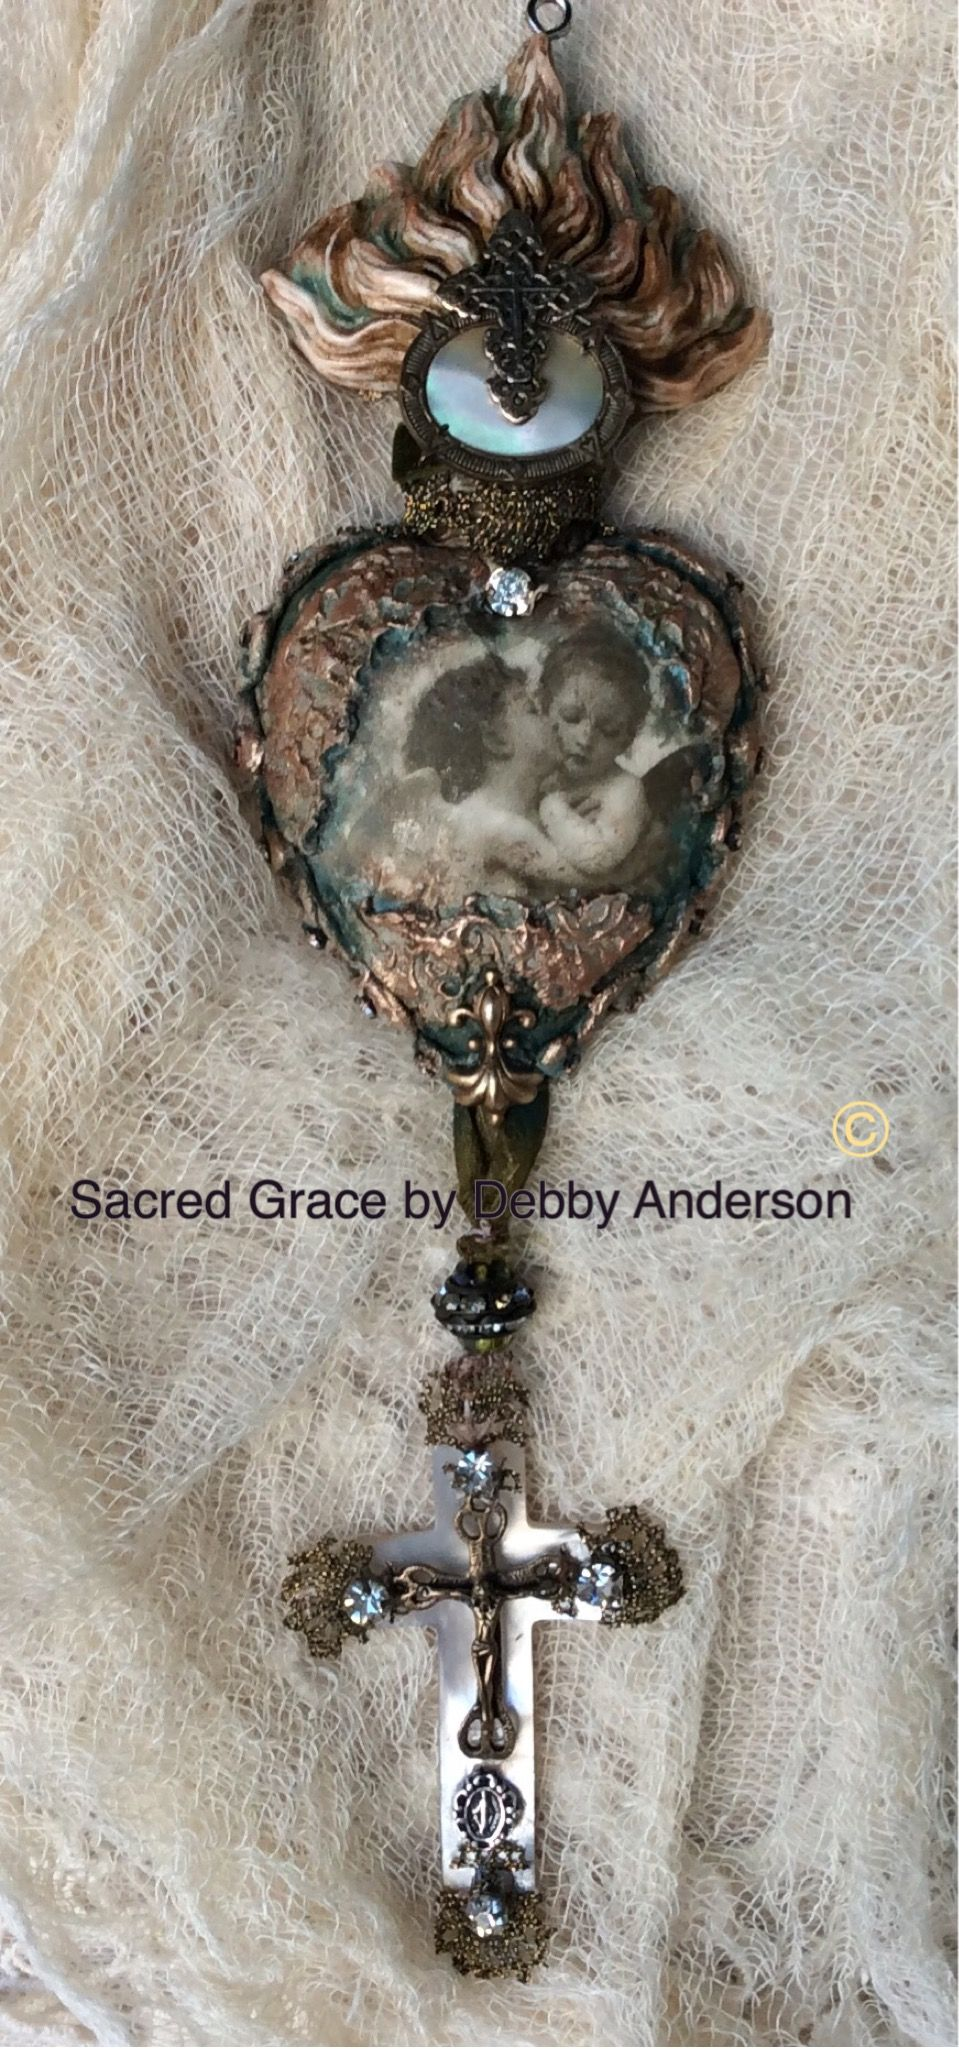 Sacred Grace © by Debby Anderson 2015